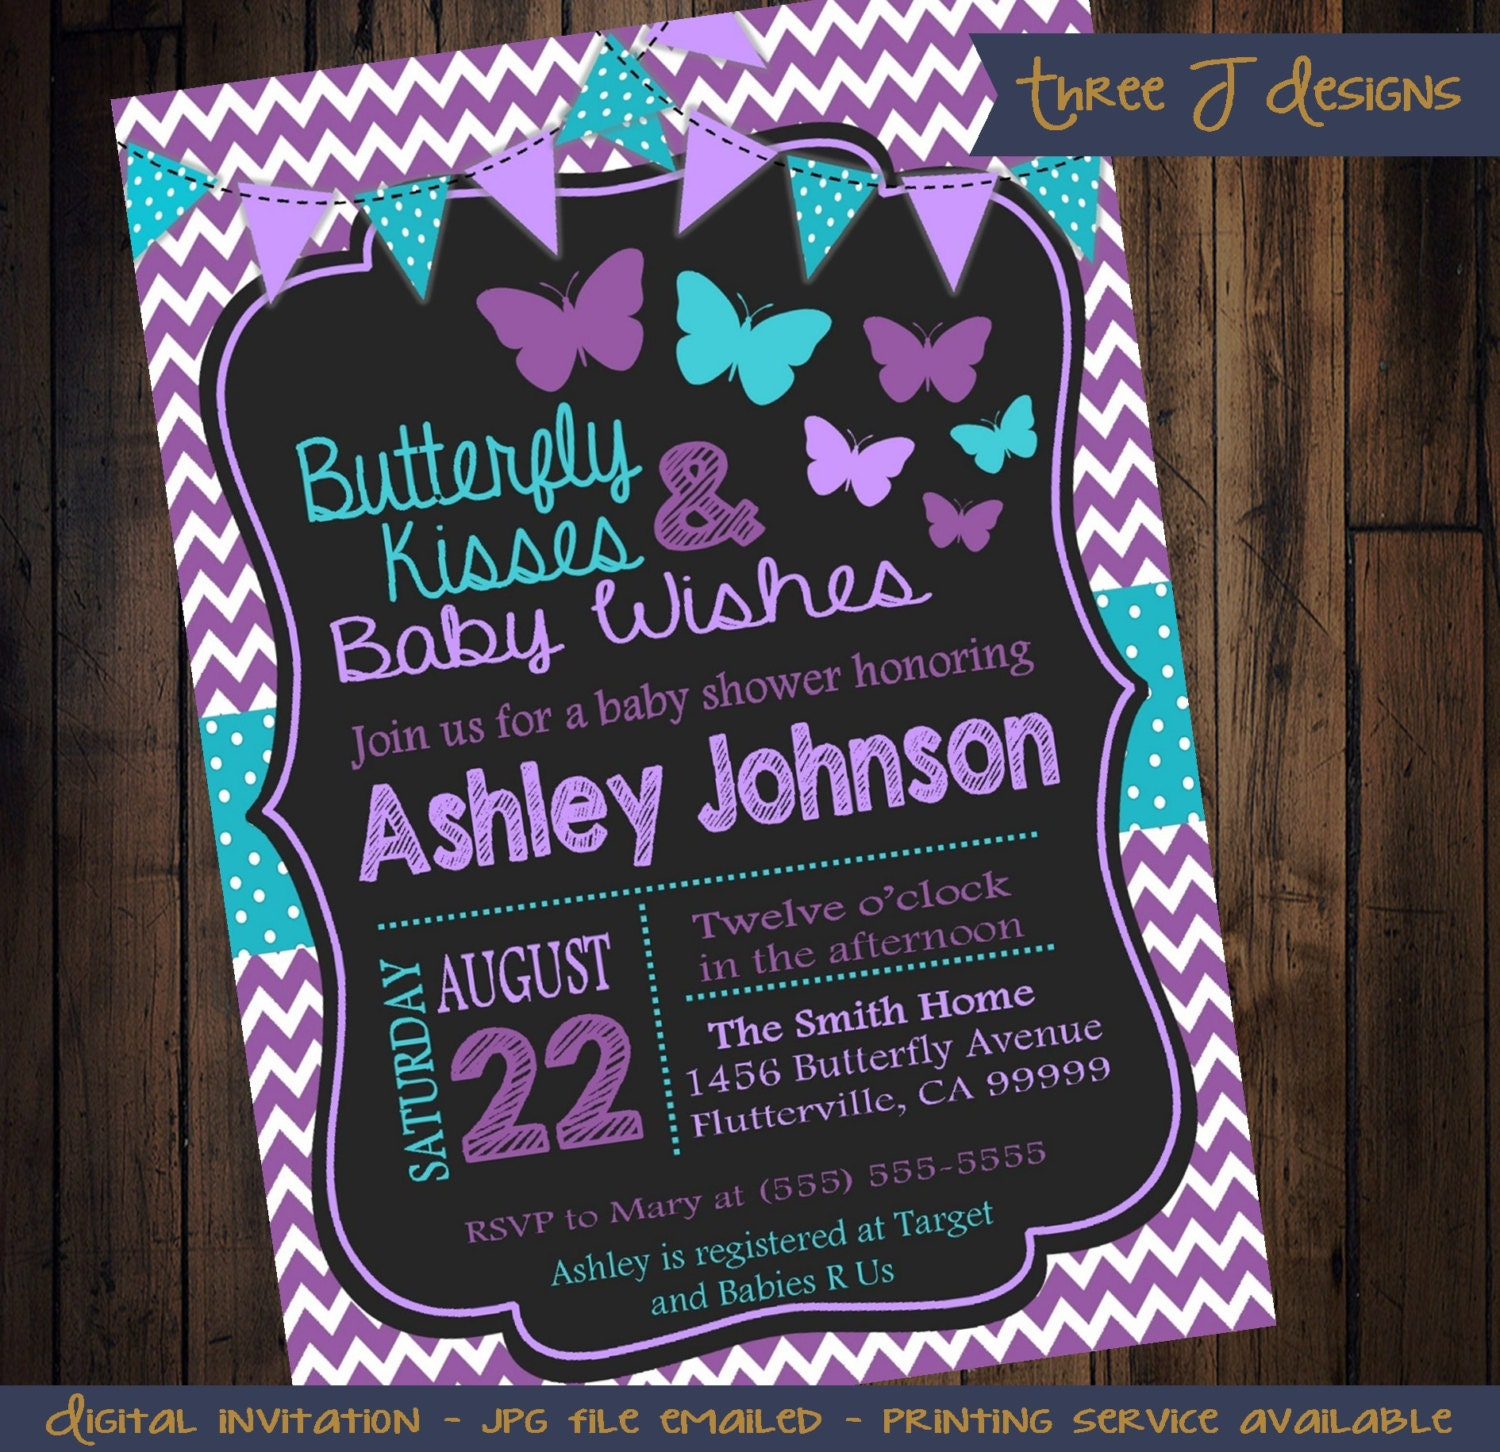 Butterfly Baby Shower Invites: Purple & Teal Butterfly Baby Shower Invitation By